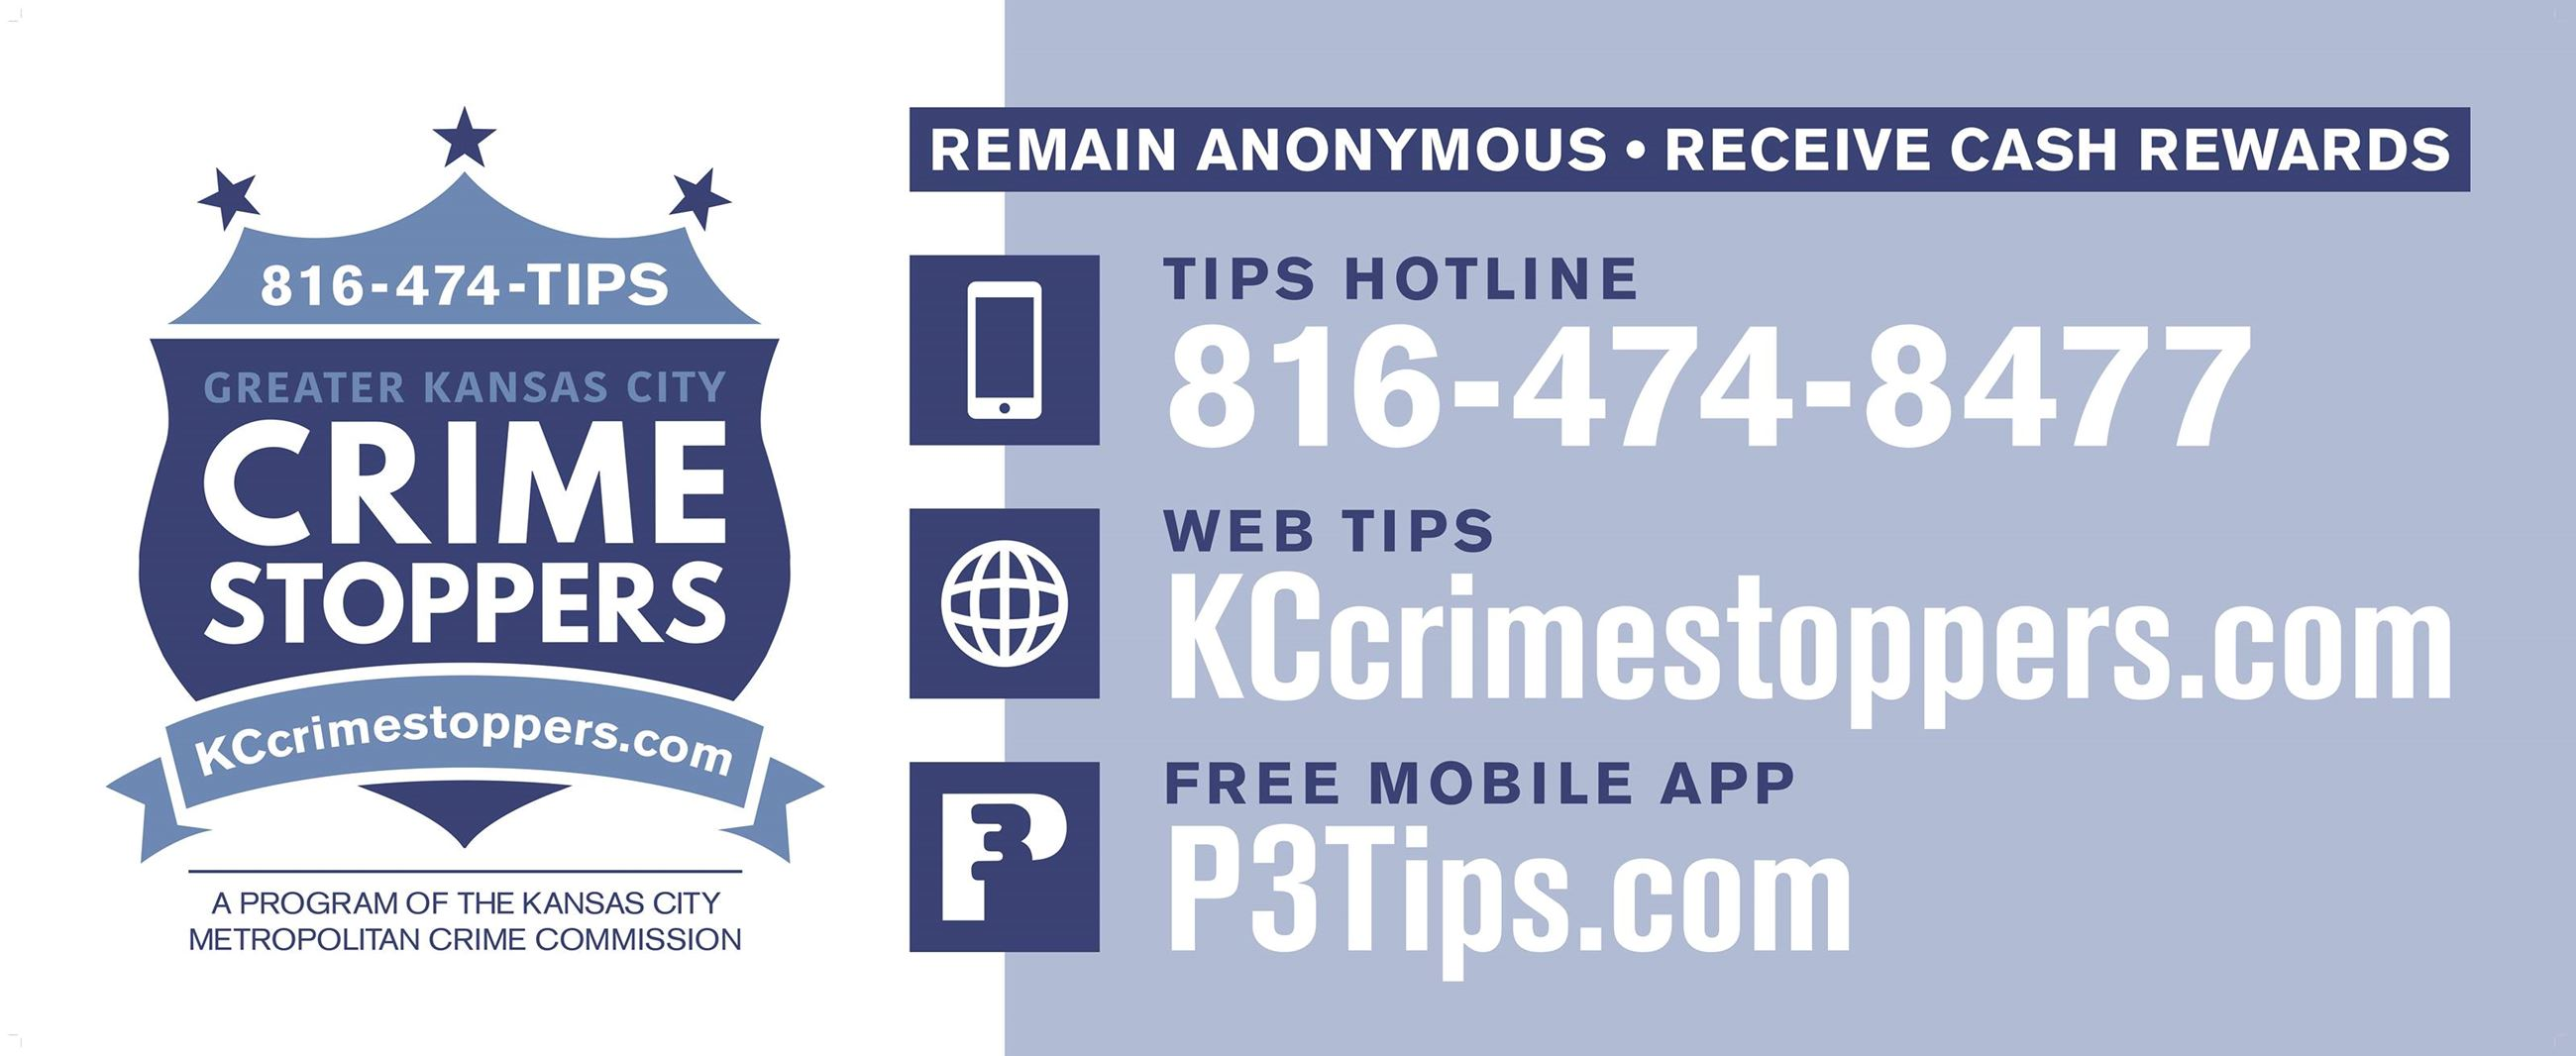 KC crime stoppers dot com